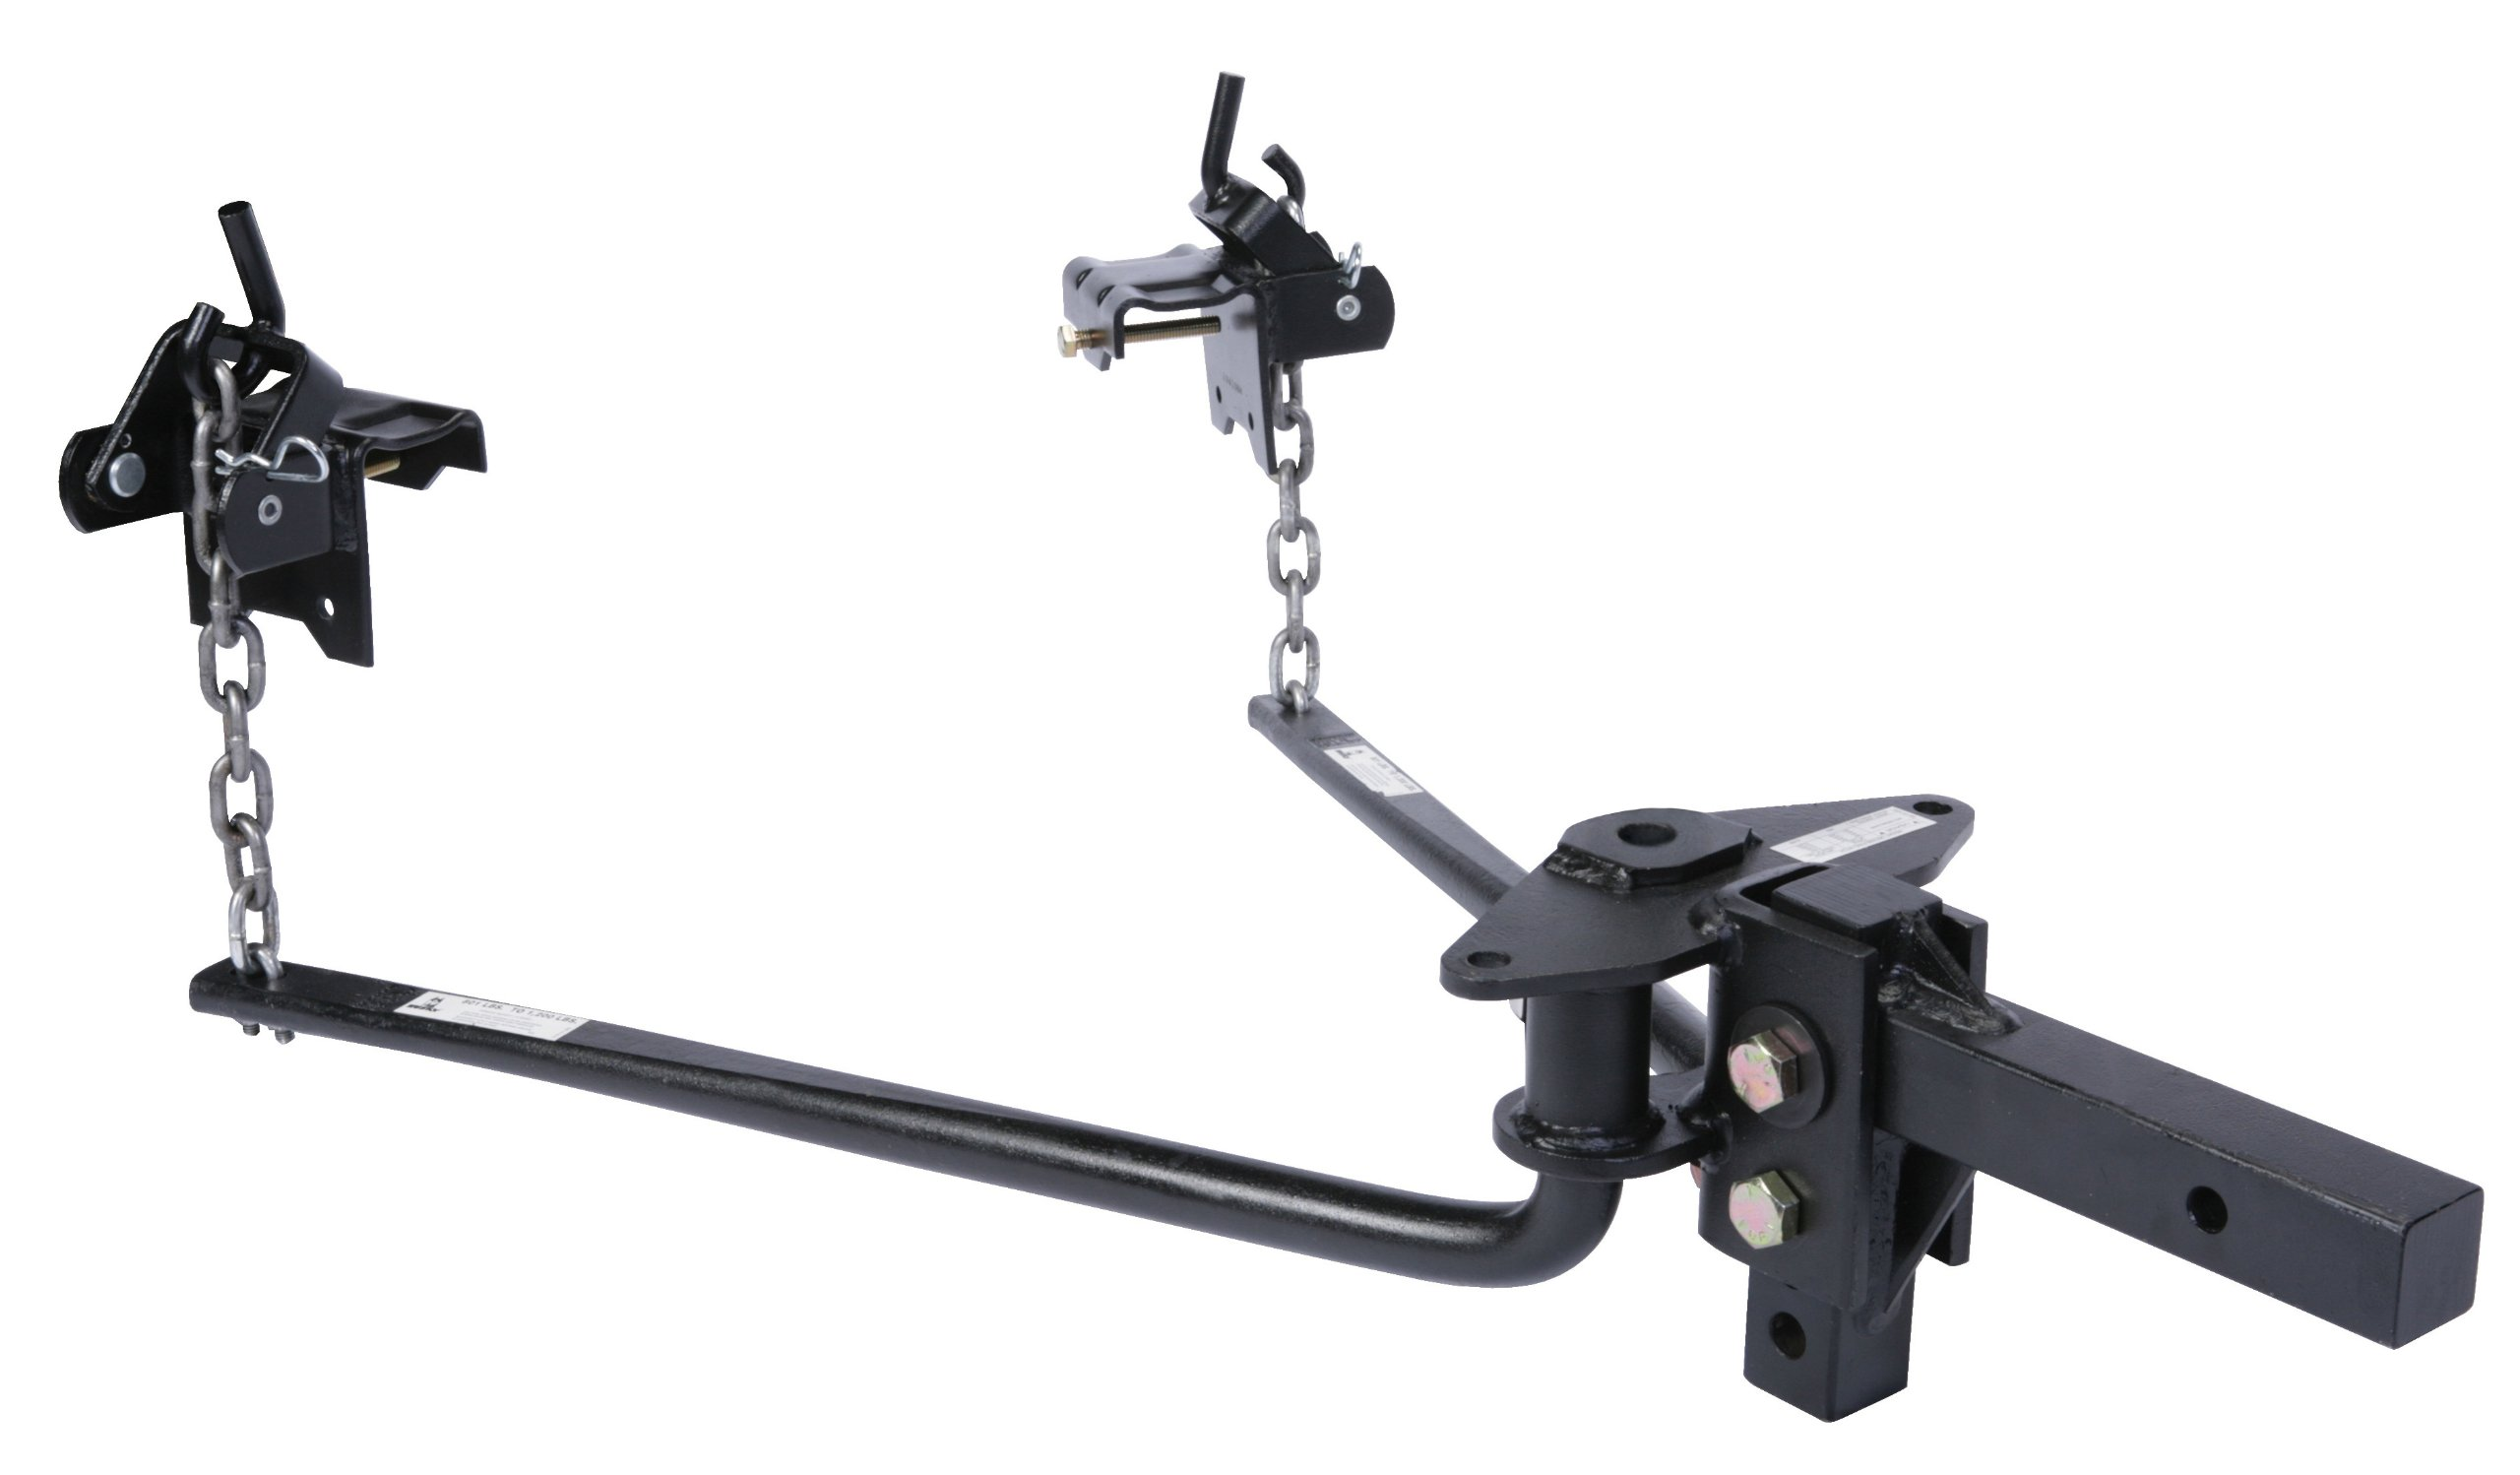 Husky 31425 Round Bar Weight Distribution Hitch with Shank Assembly - (1001 lb. to 1400 lb. Tongue Weight Capacity) by Husky